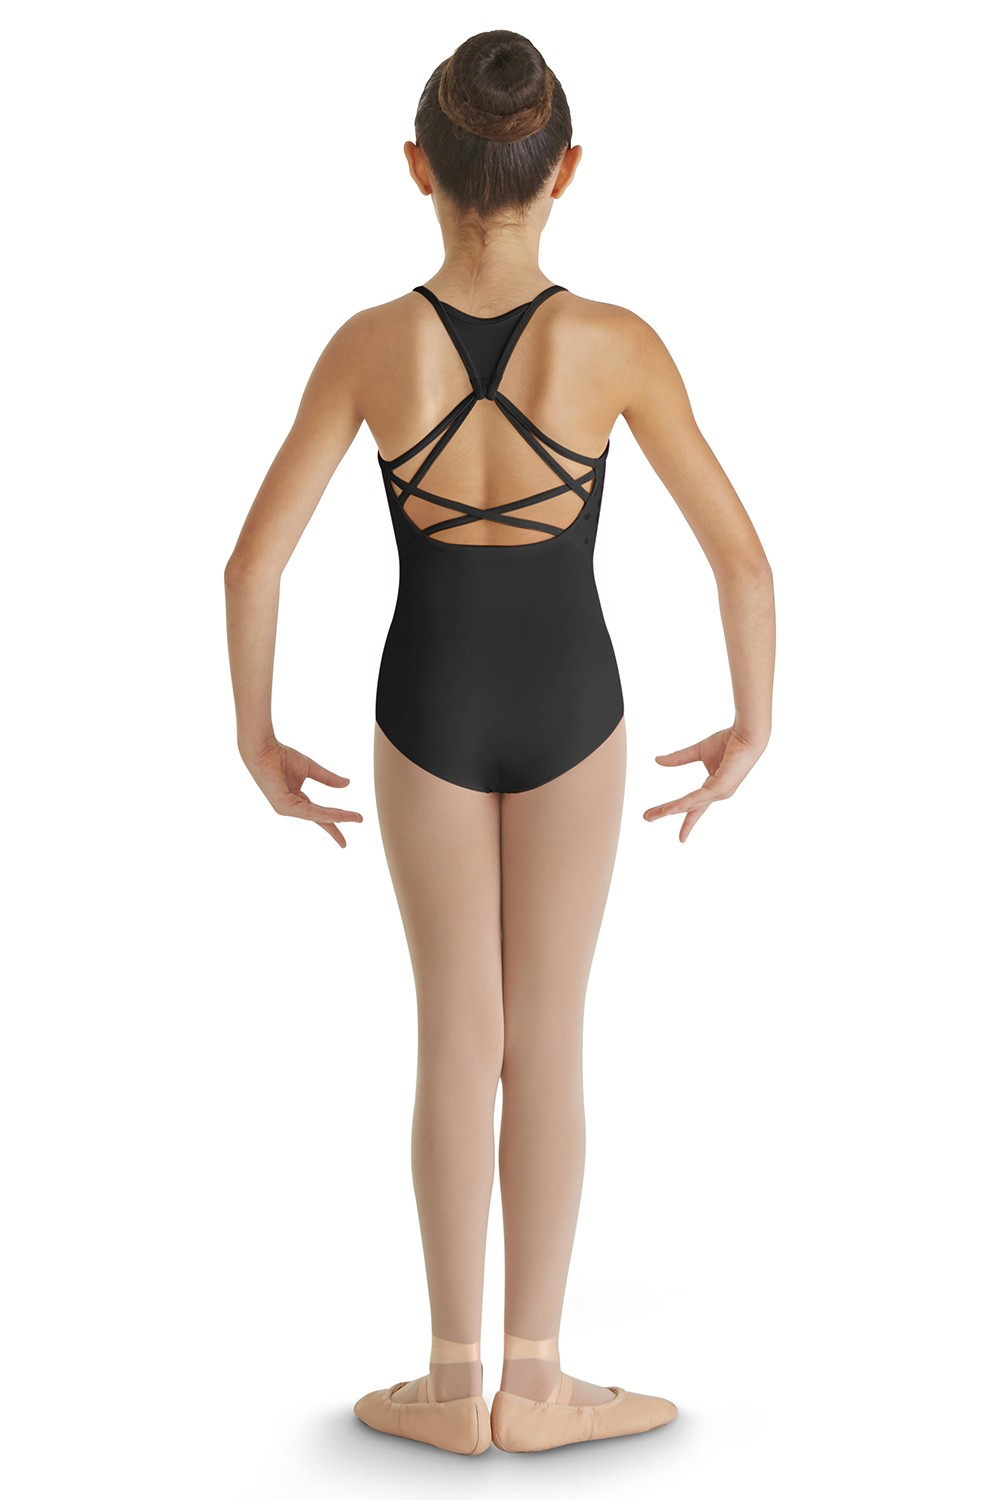 Agni Children's Dance Leotards